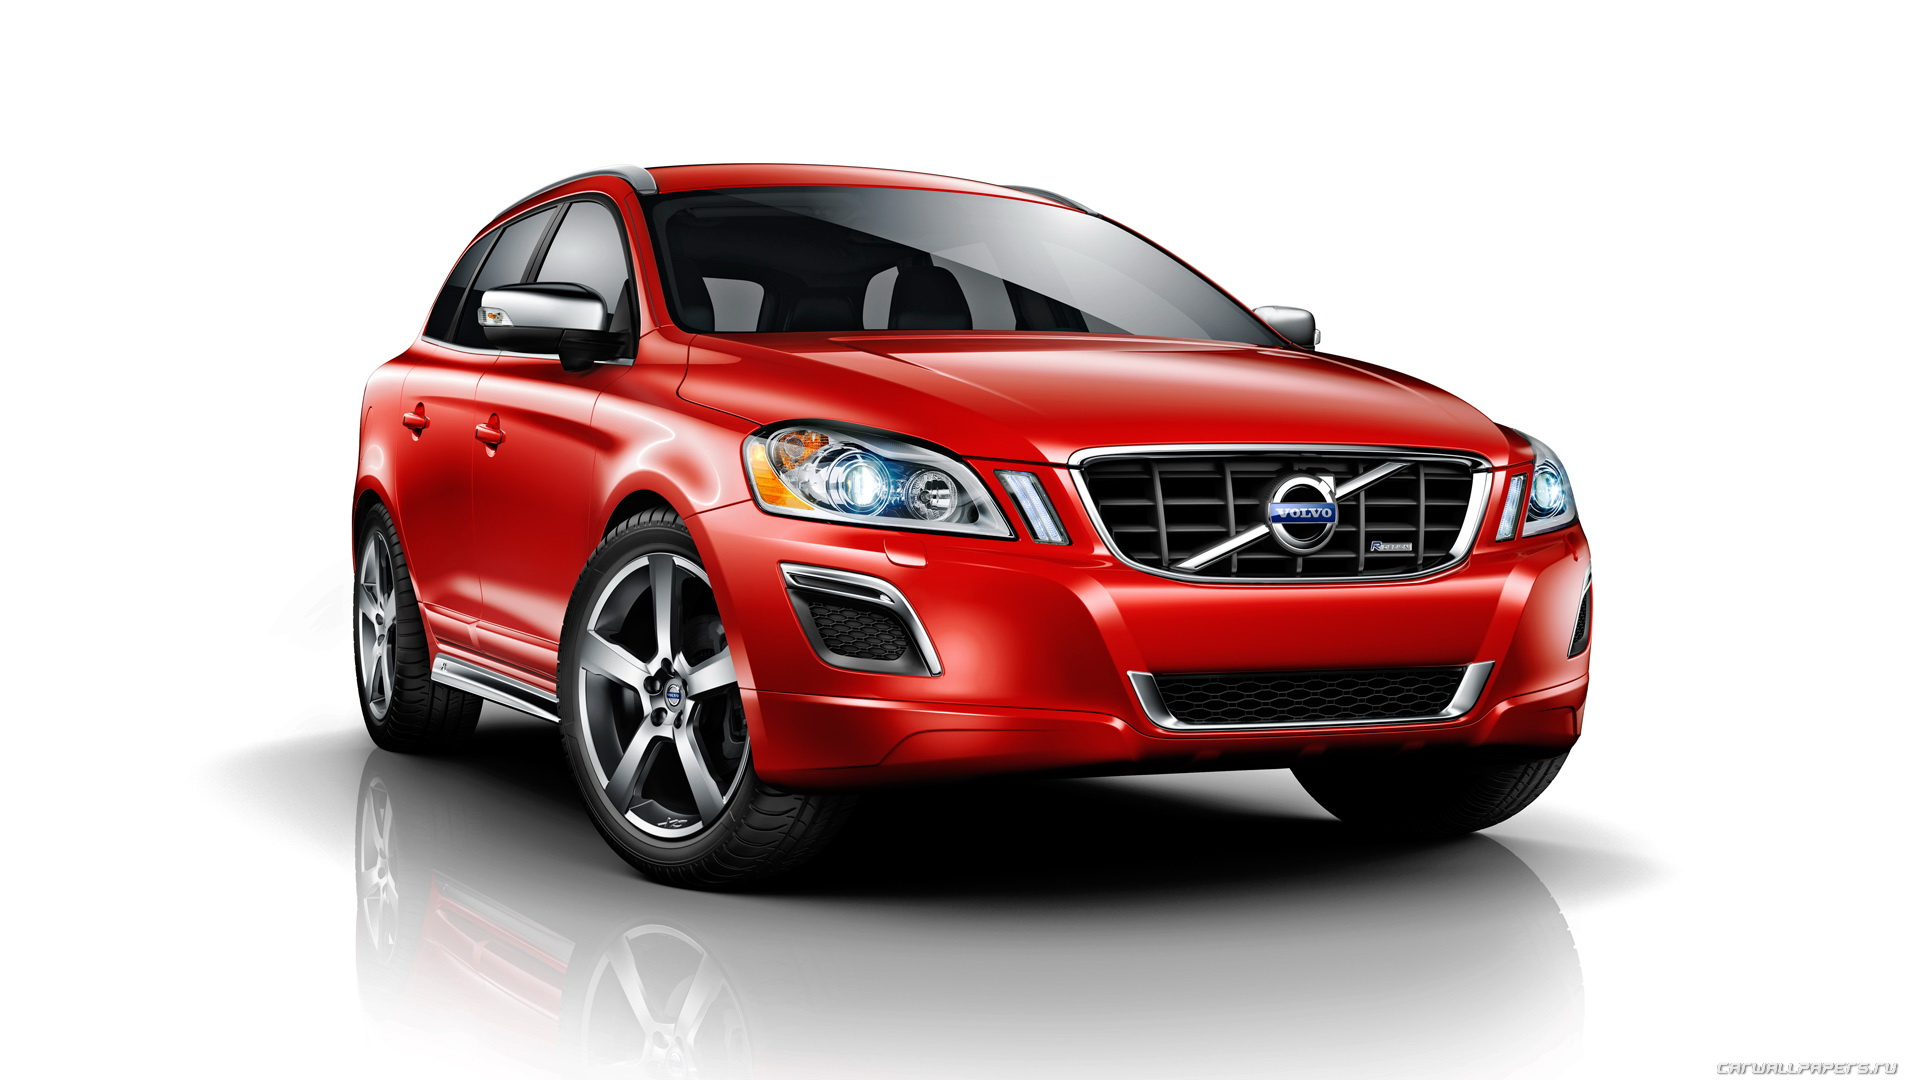 car wallpapers volvo xc60 r design car wallpapers volvo 1920x1080